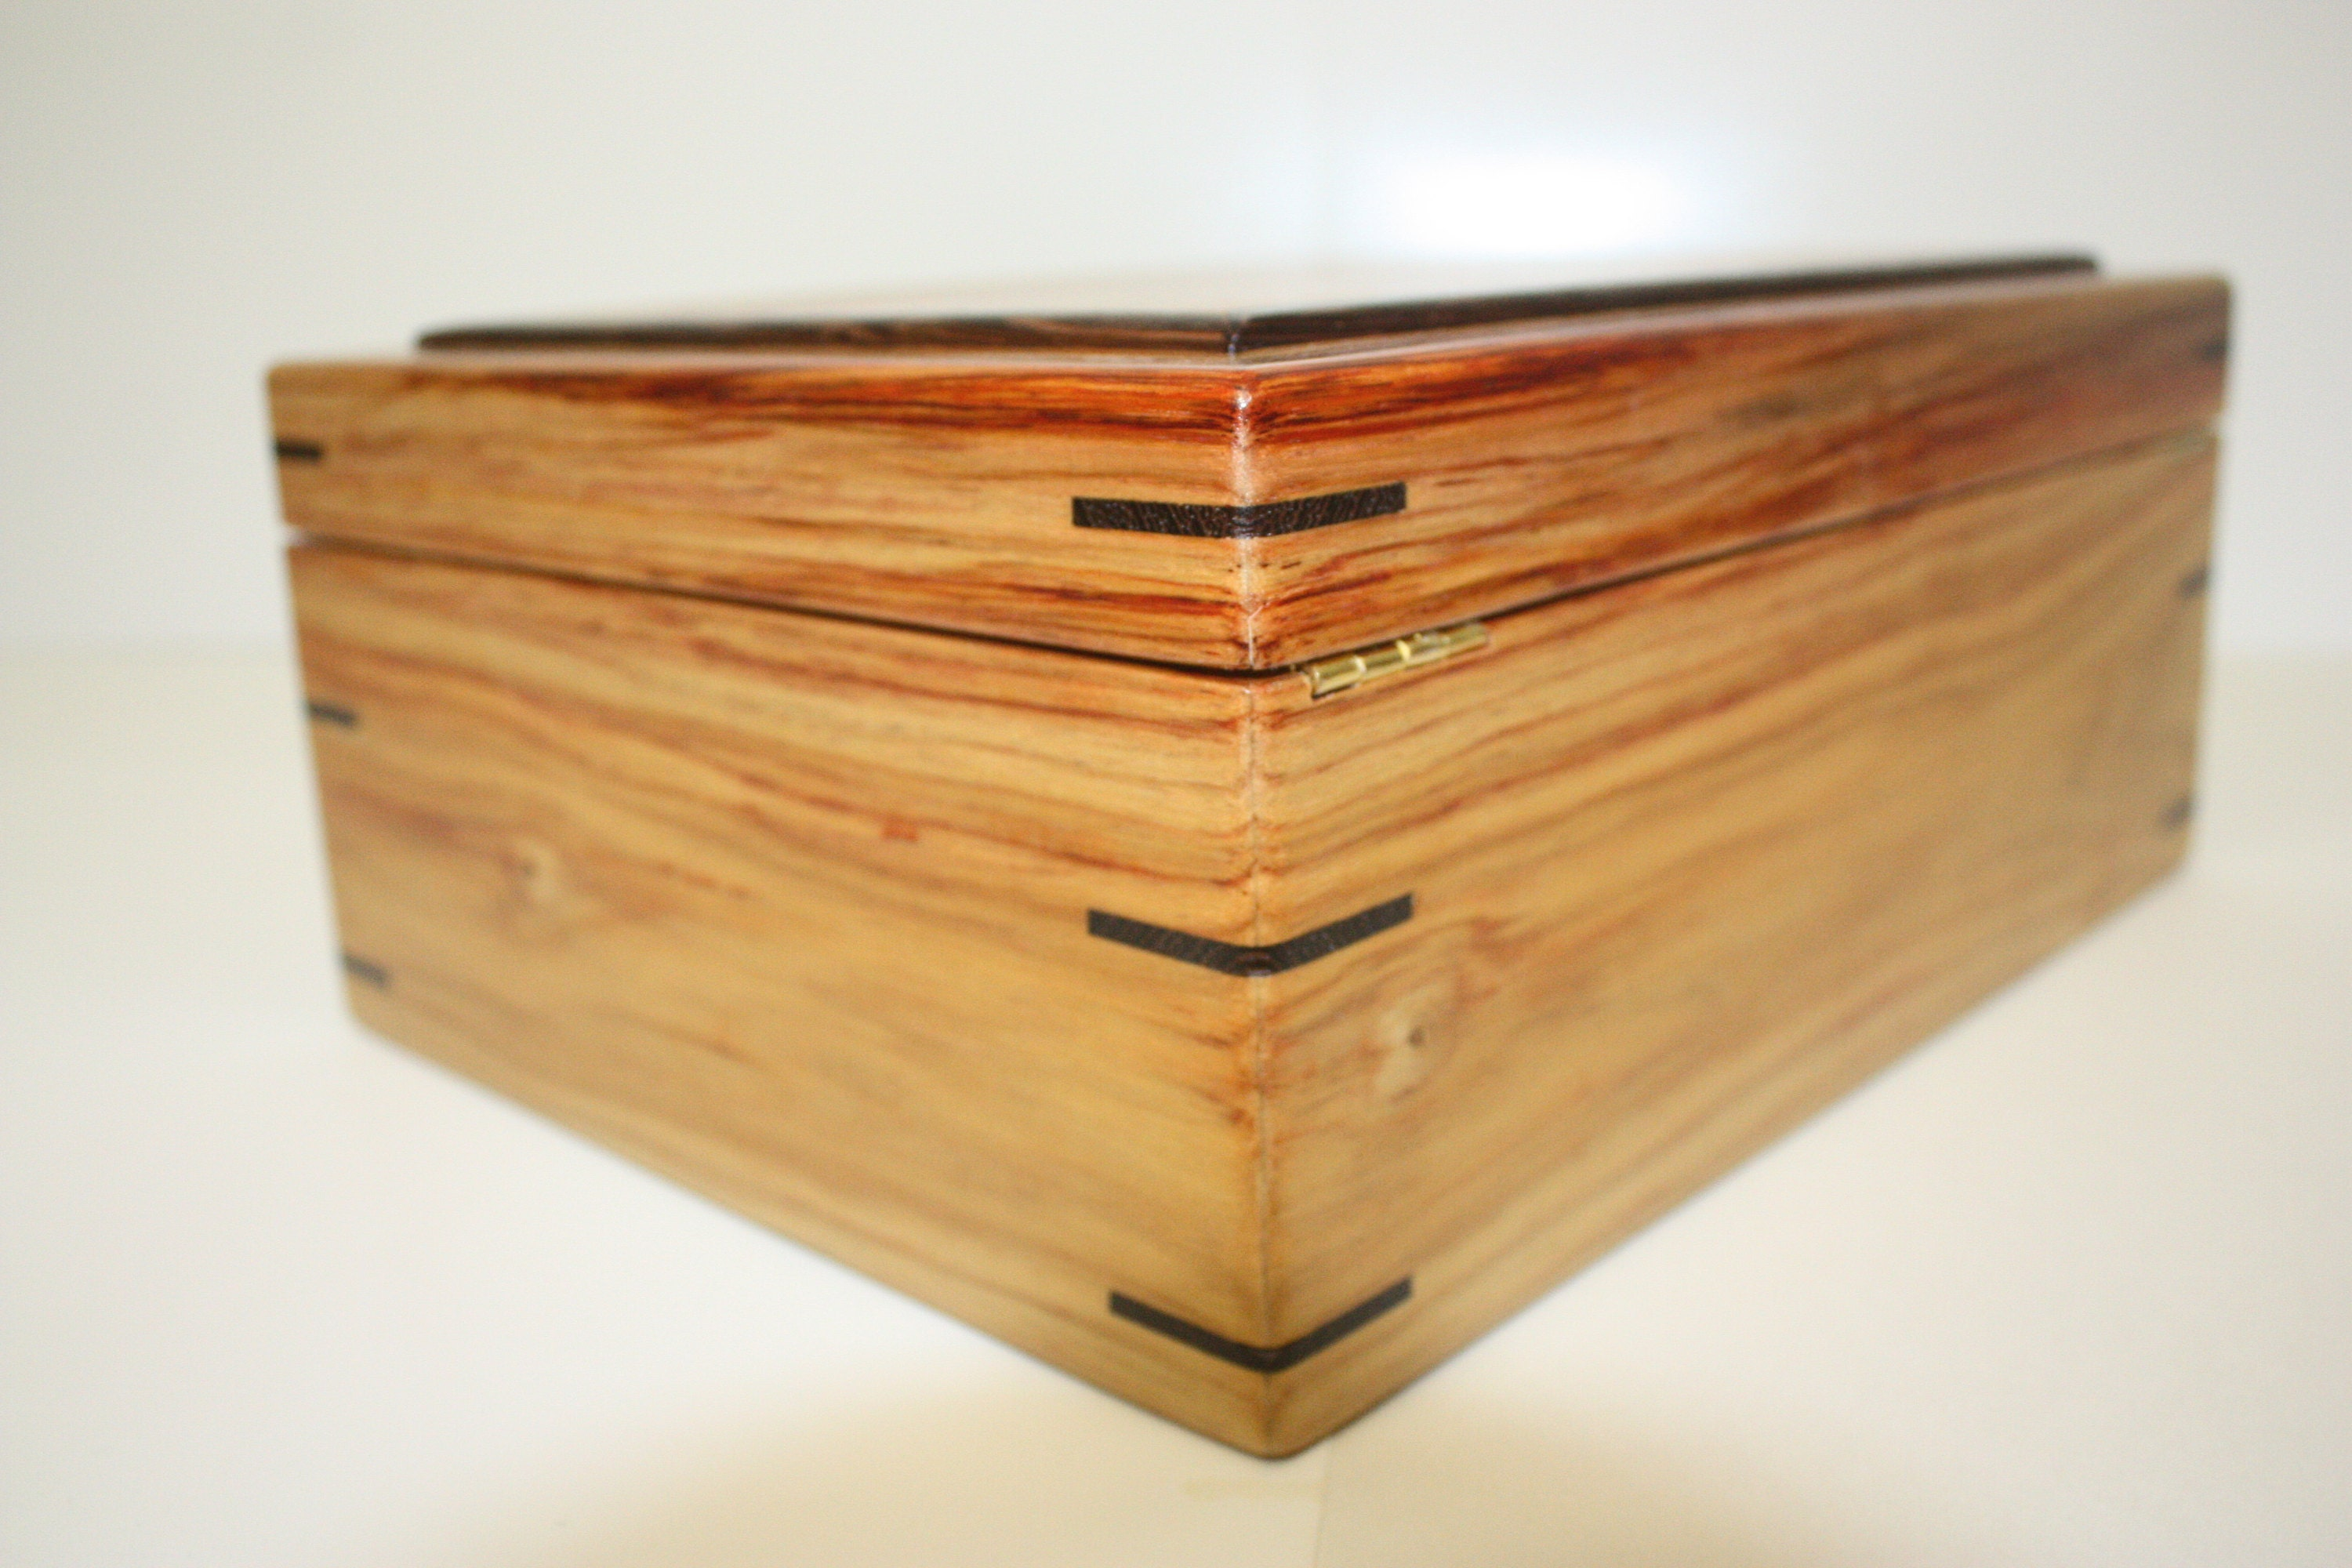 Canarywood Box with Quadrant Hinges and Lock